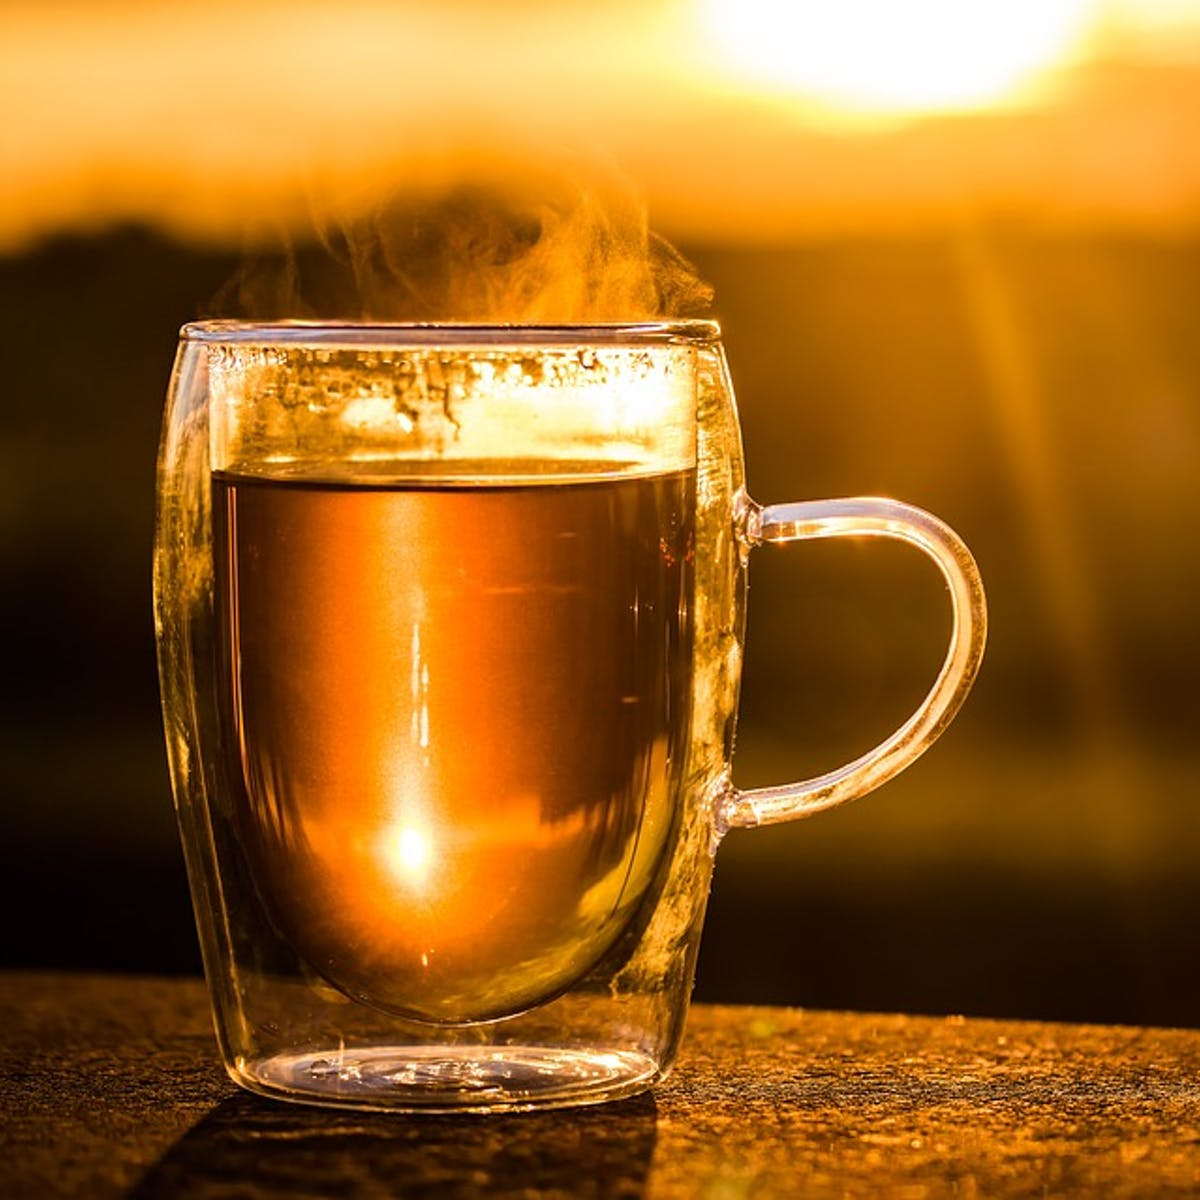 """Tea Study Reveals Unexpected Risks Due to Drinking """"Very Hot Beverages"""""""